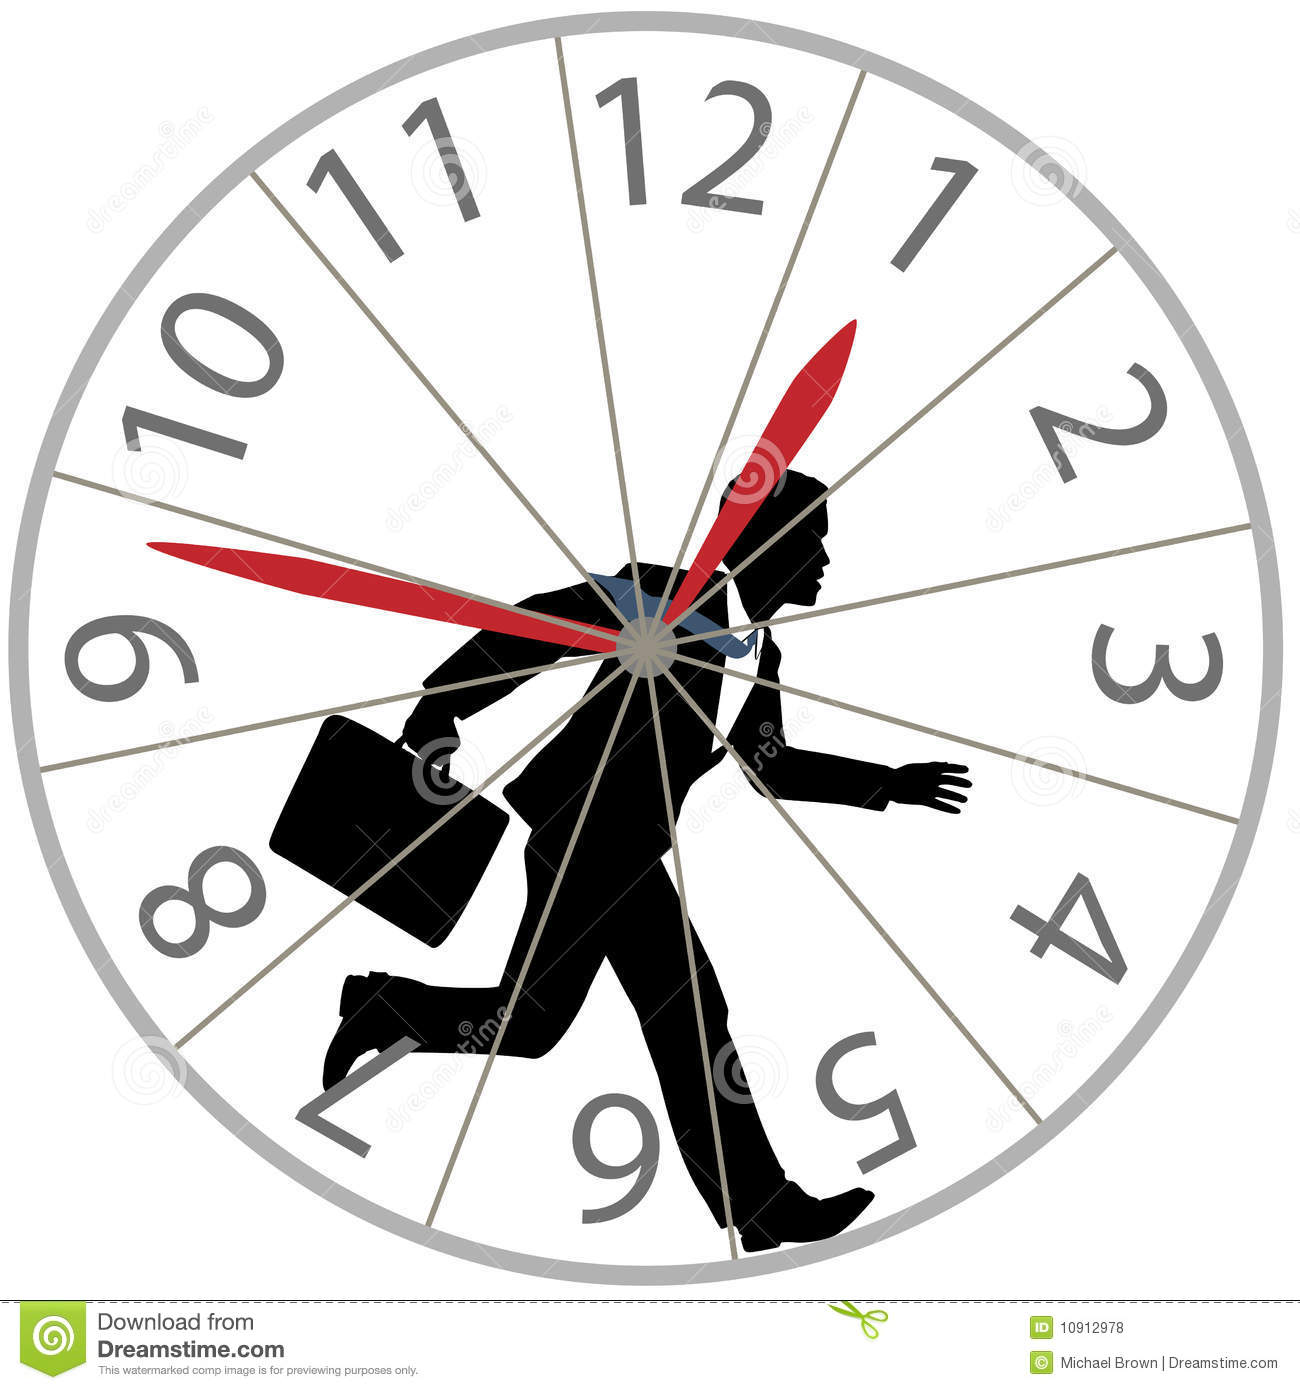 business-man-runs-rat-race-hamster-wheel-clock-10912978.jpg